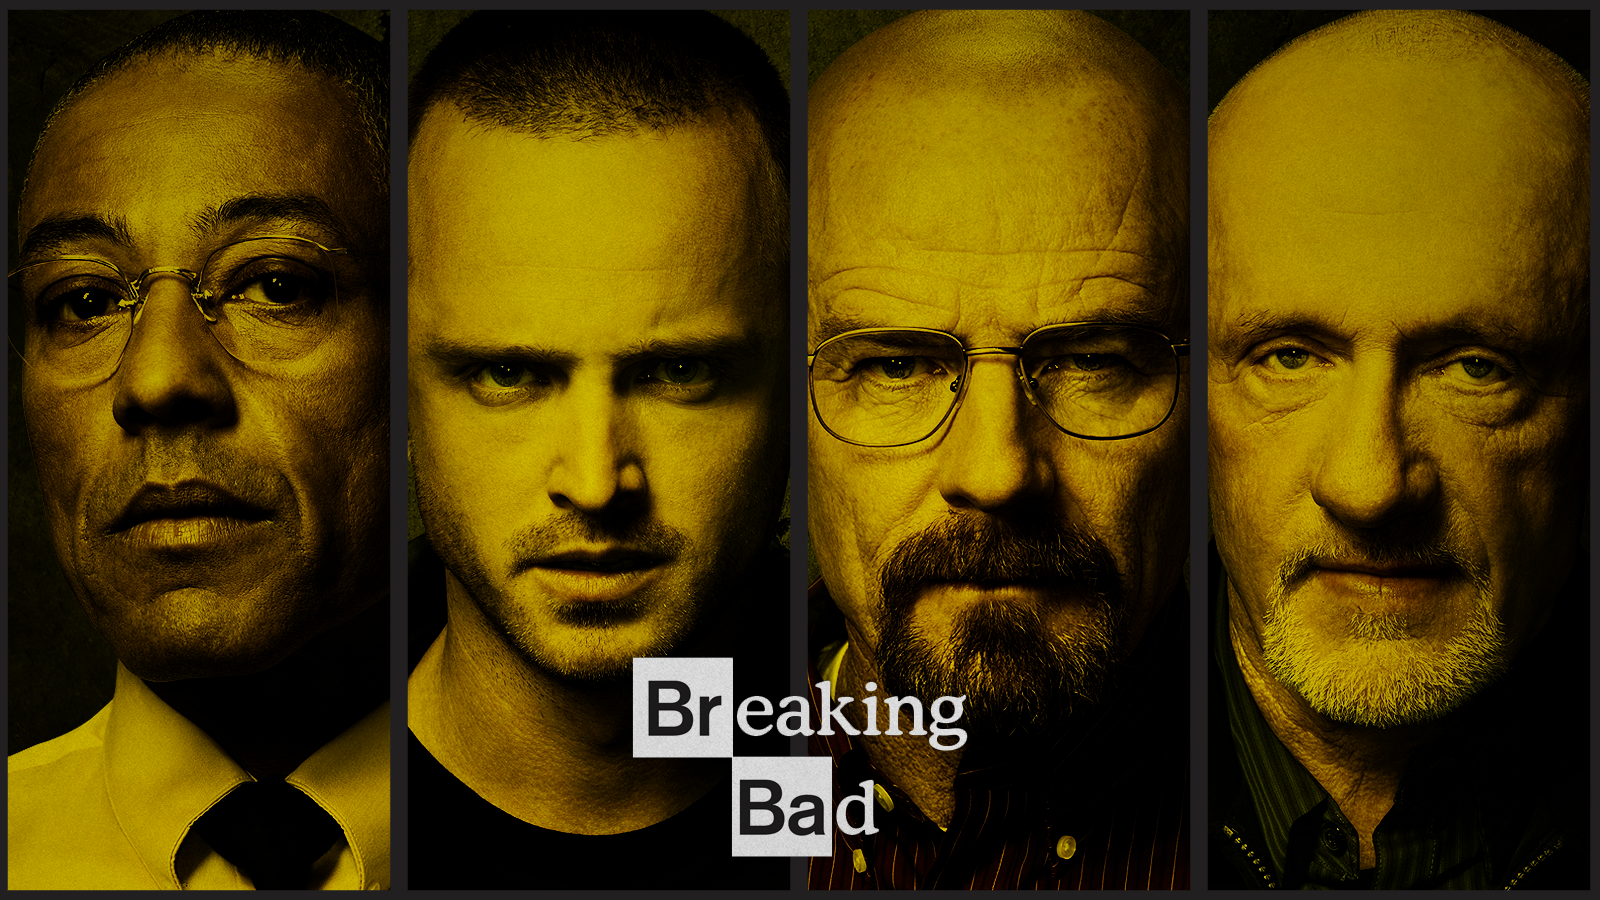 Imagen - Breaking Bad.png | Comunidad Central | FANDOM powered by Wikia